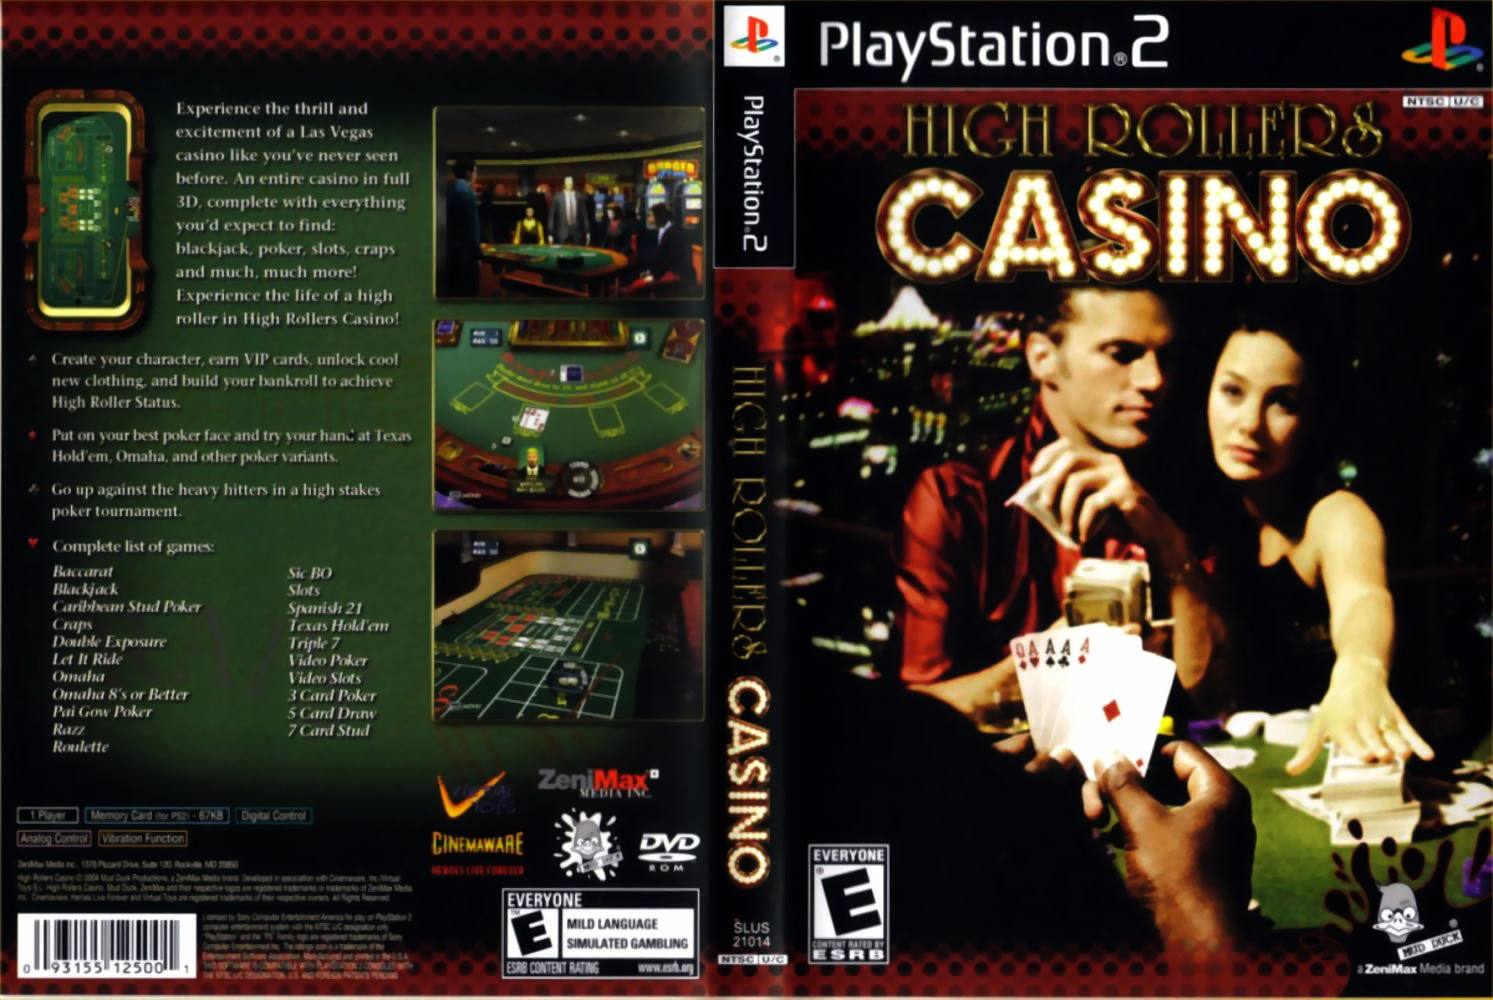 watch casino online free 1995 start online casino